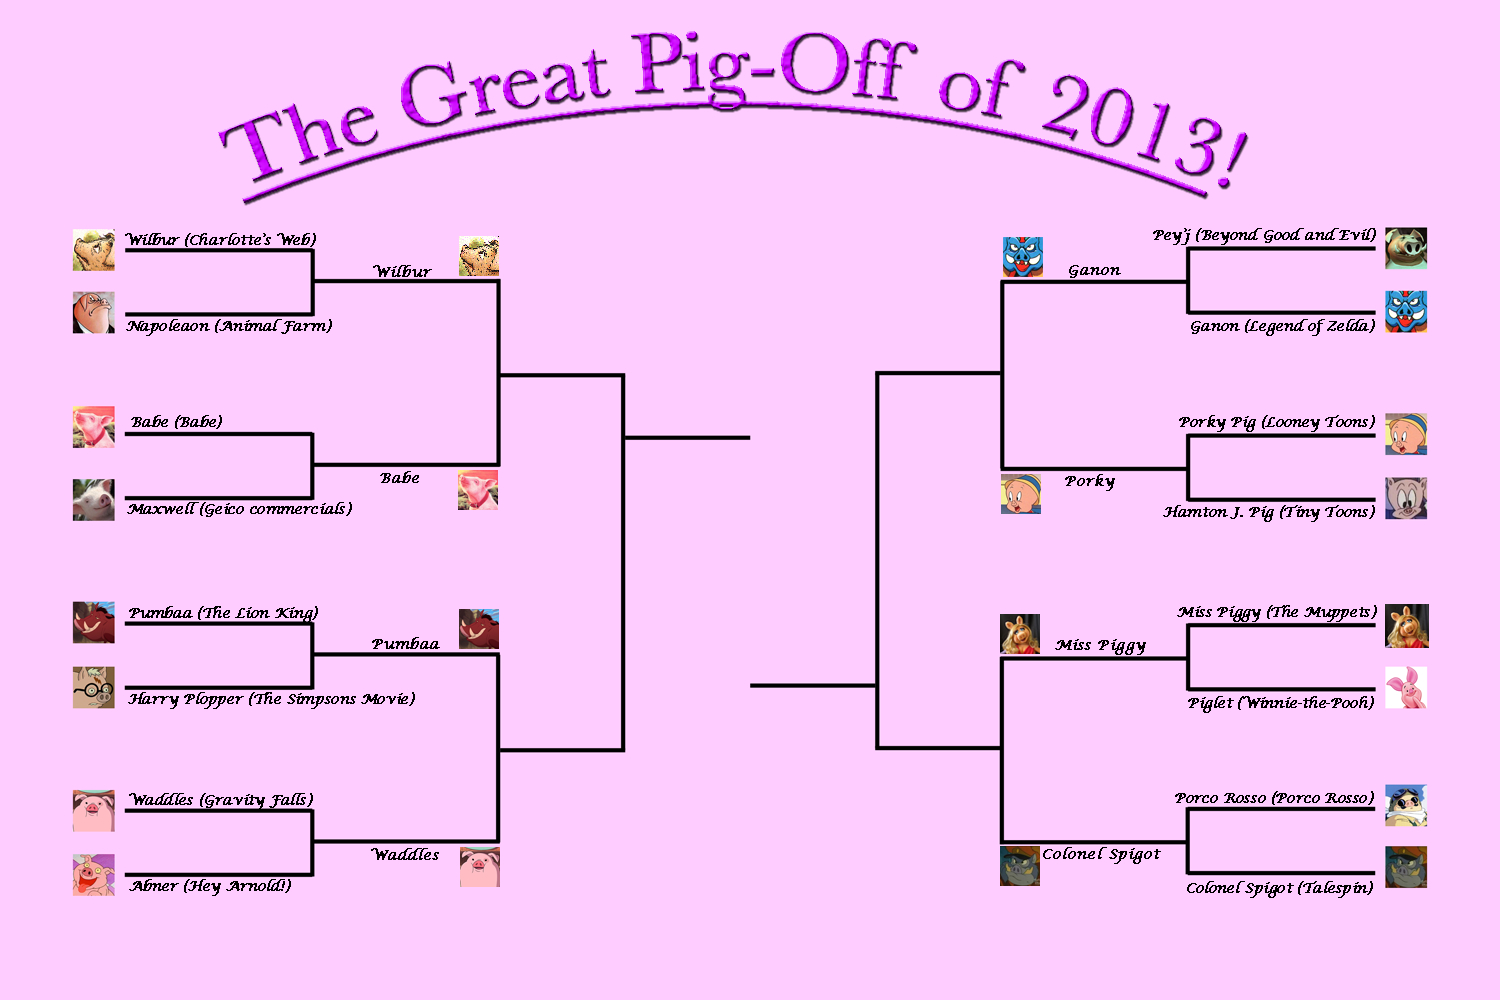 Round Two Pig-Off brackets